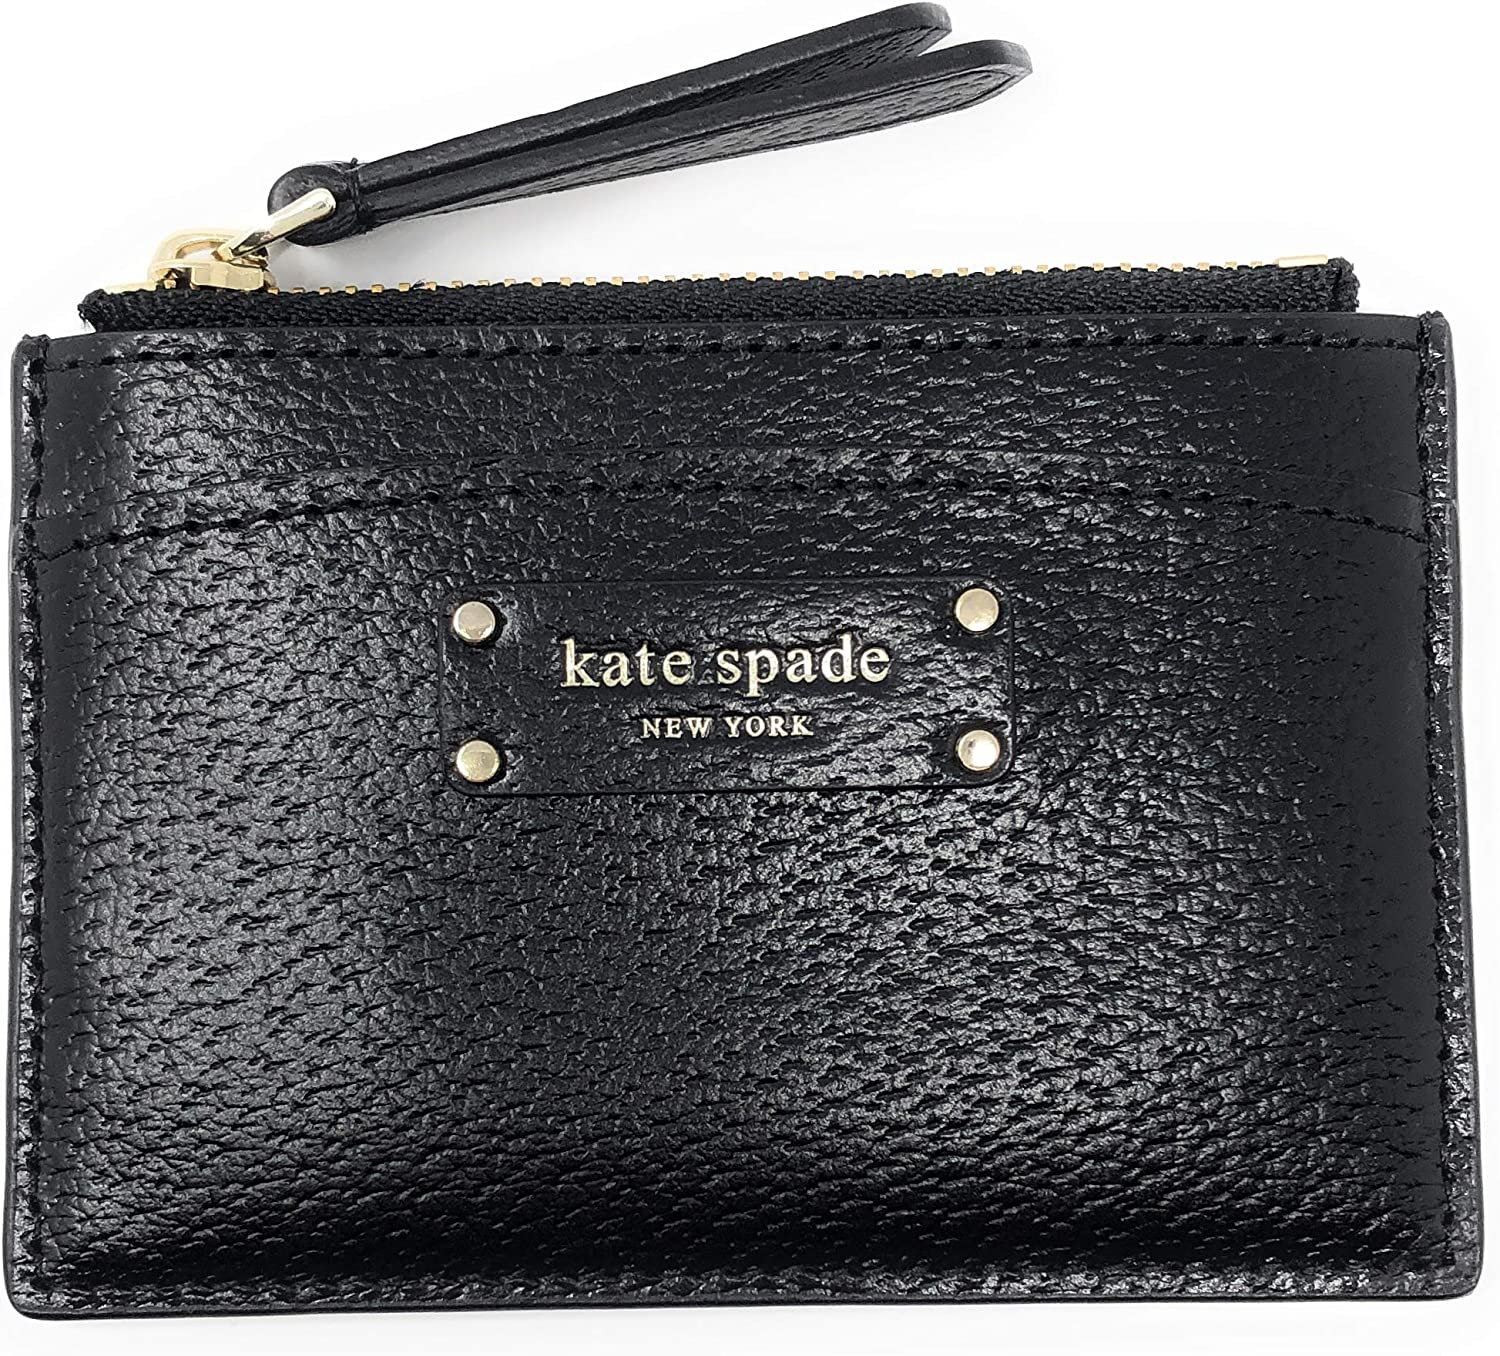 Kate Spade New York Jeanne Small Pebbled Leather Card Wallet Coin Purse (Black)